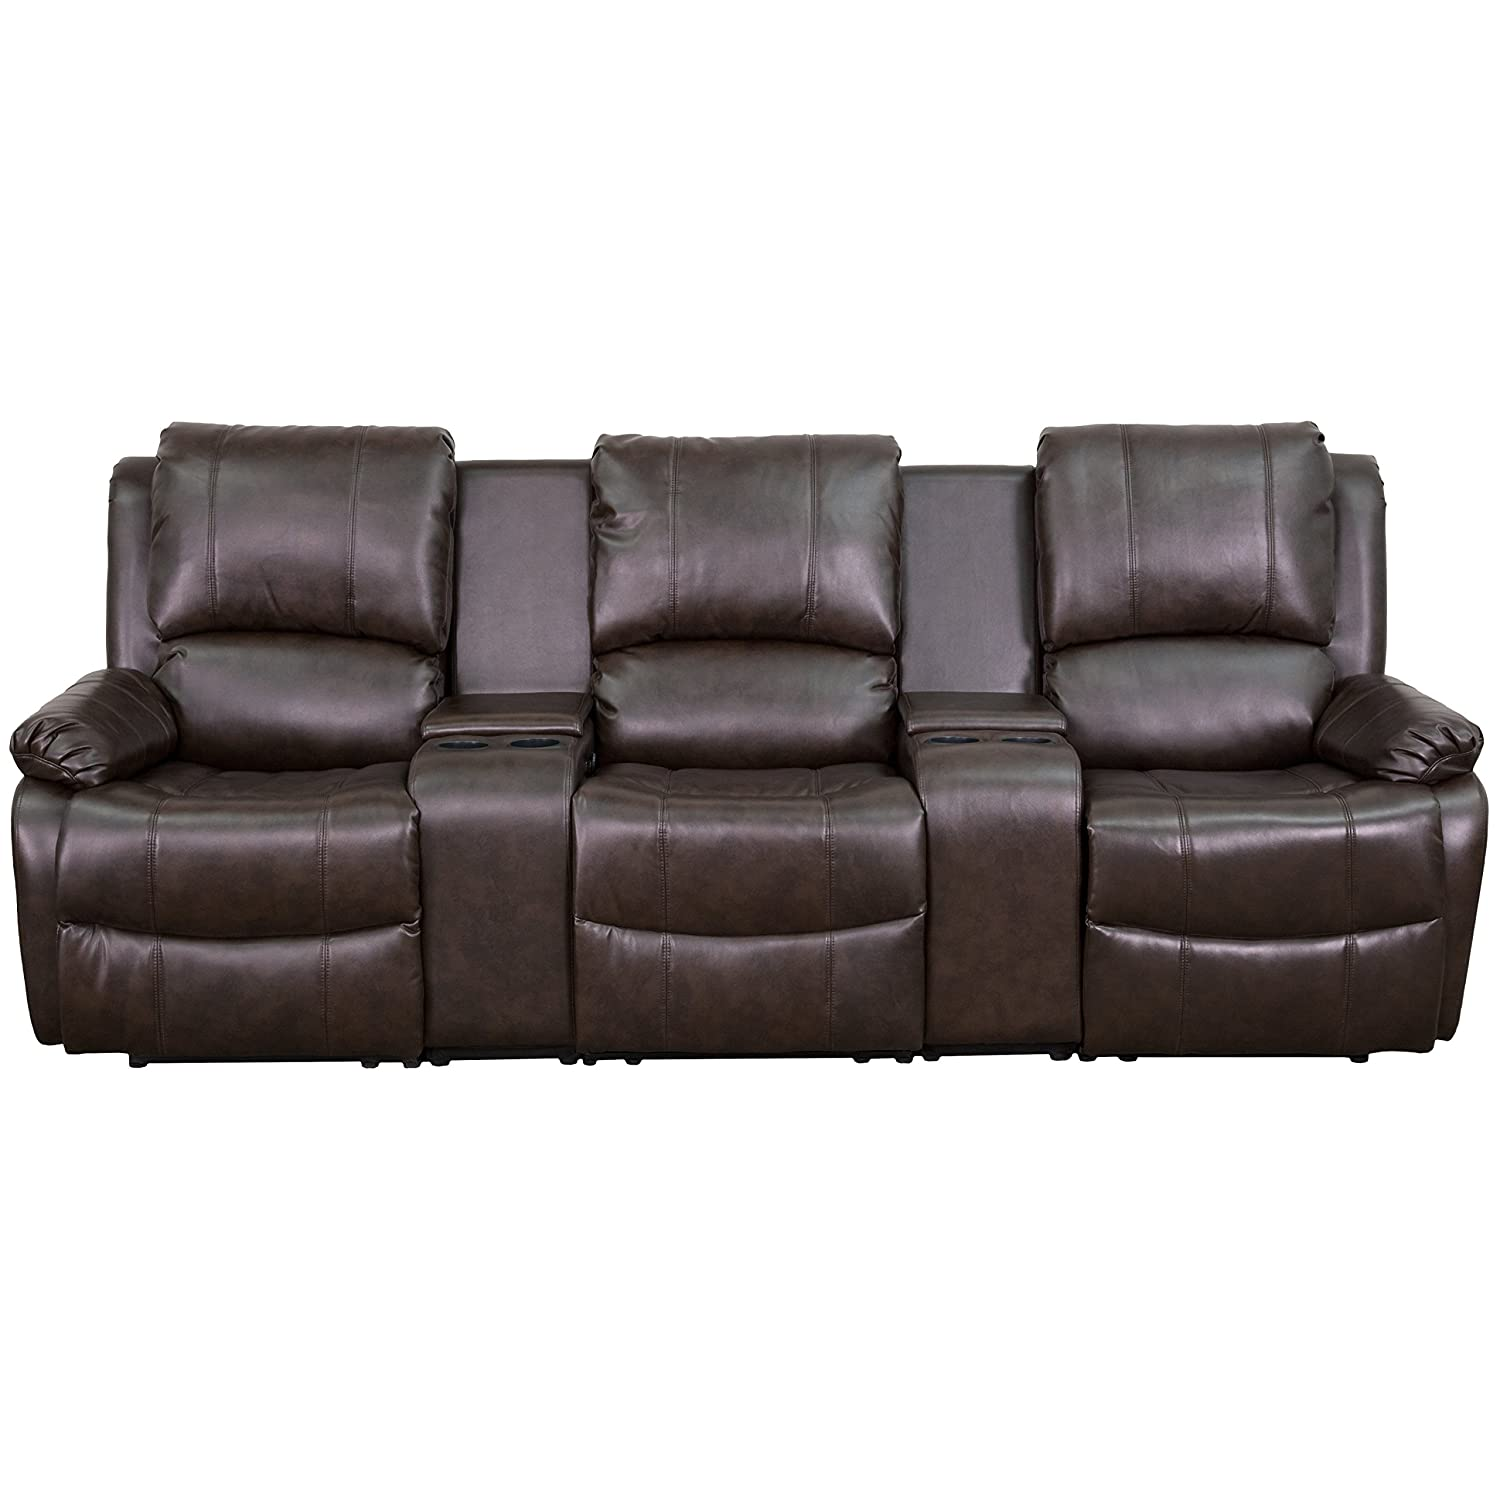 theater premierehts home rialto seating recliner recliners hts